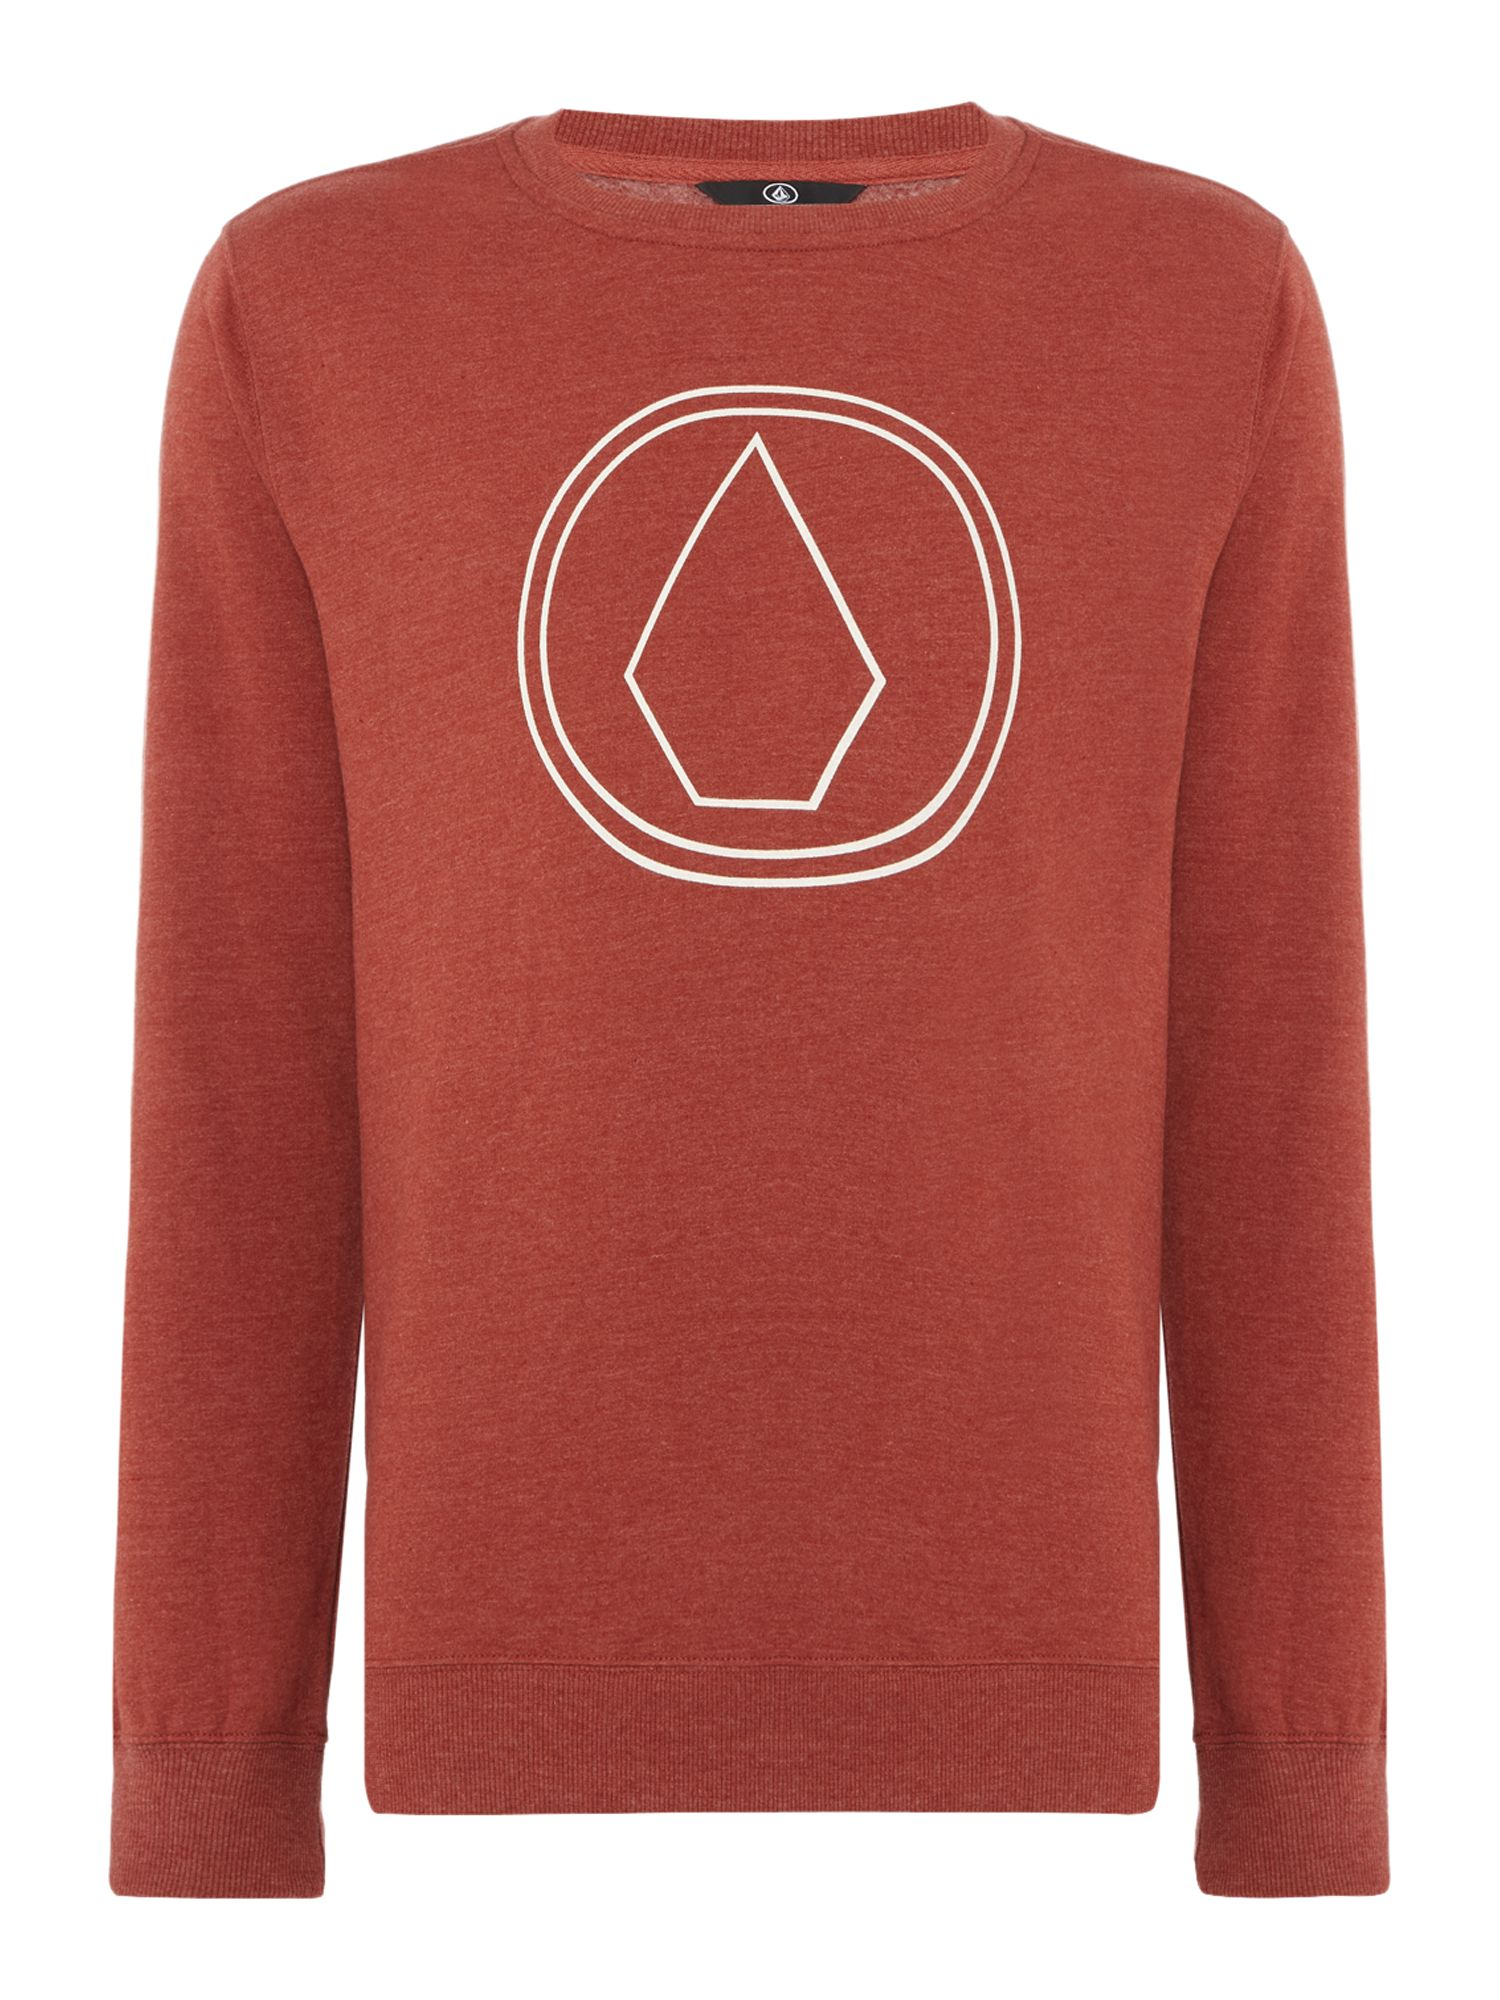 Men's Volcom Crew Neck Printed Jumper, Red